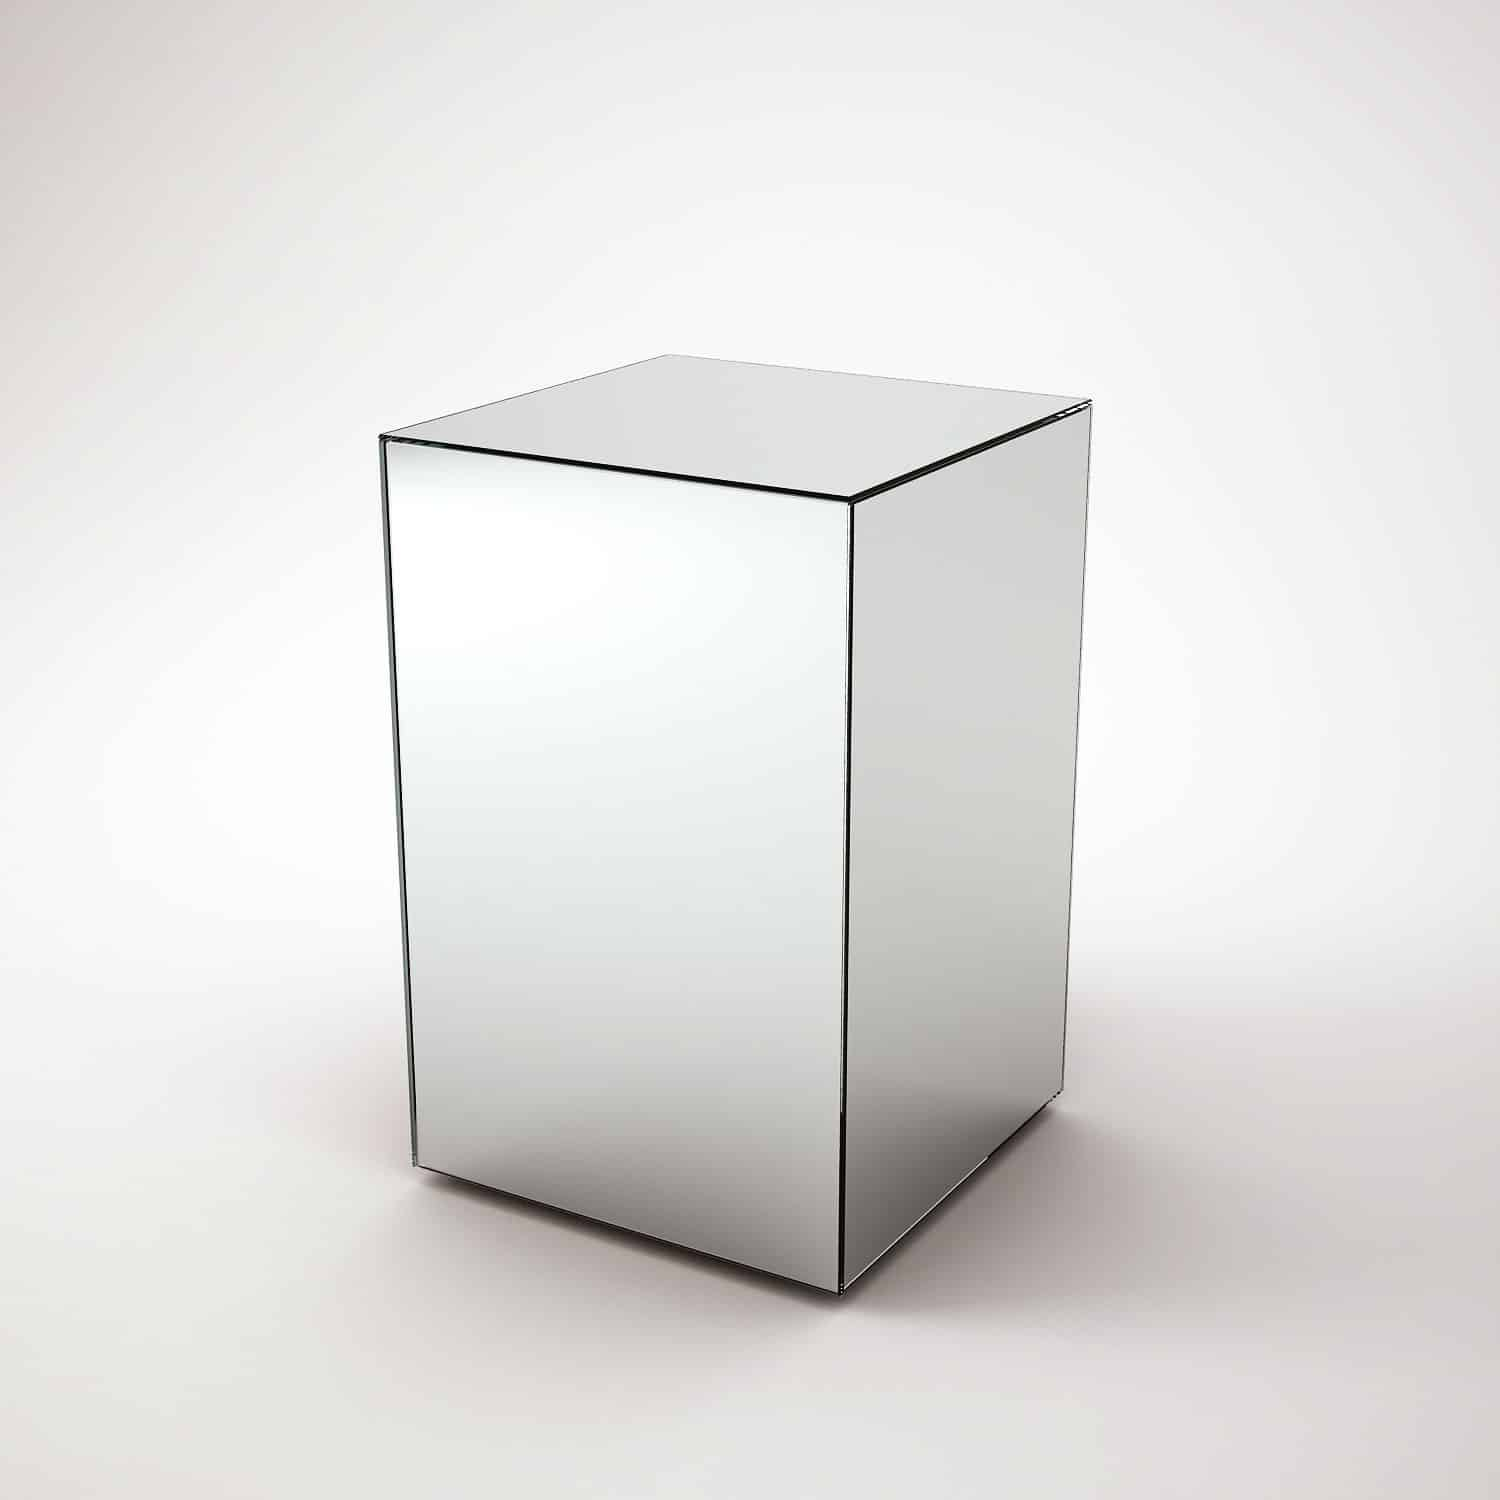 mirrored side table. Mirrored Coffee Table Side